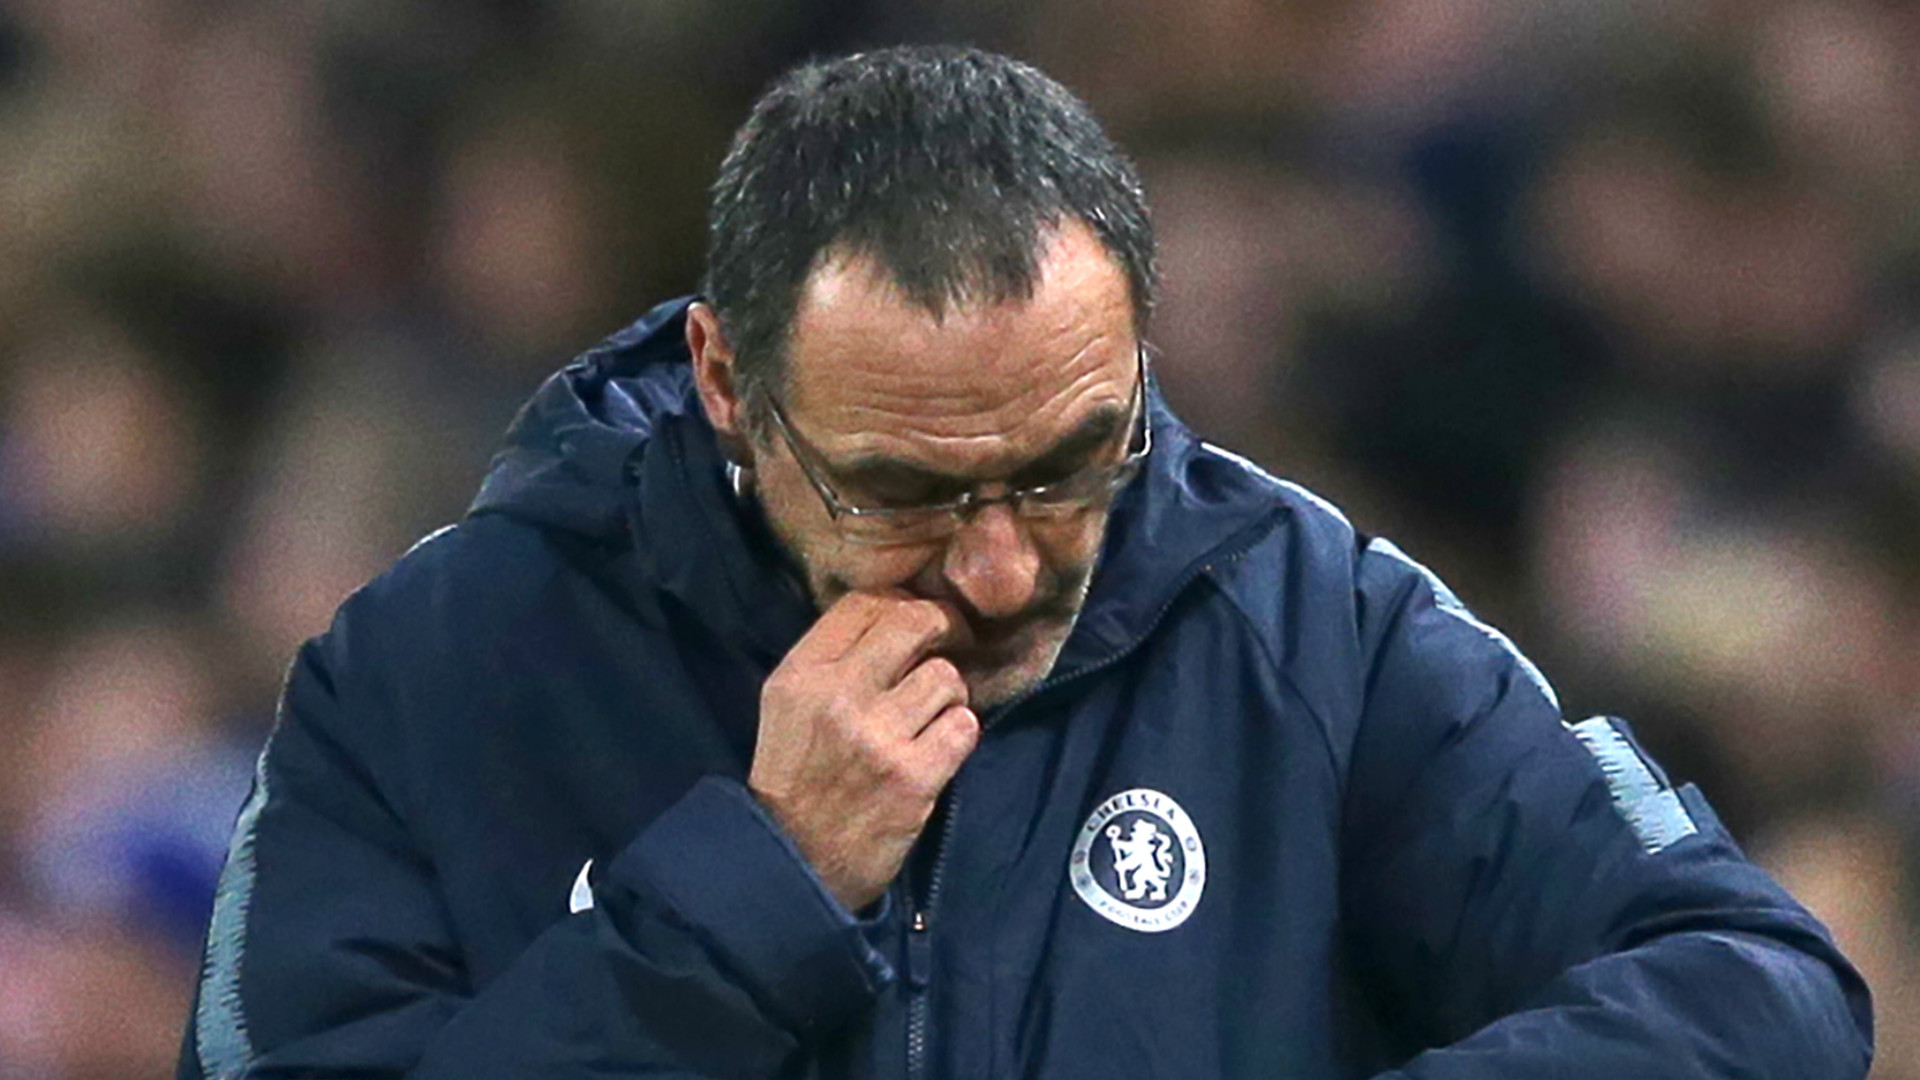 Chelsea's transfer ban could have knock on effect for Real Madrid